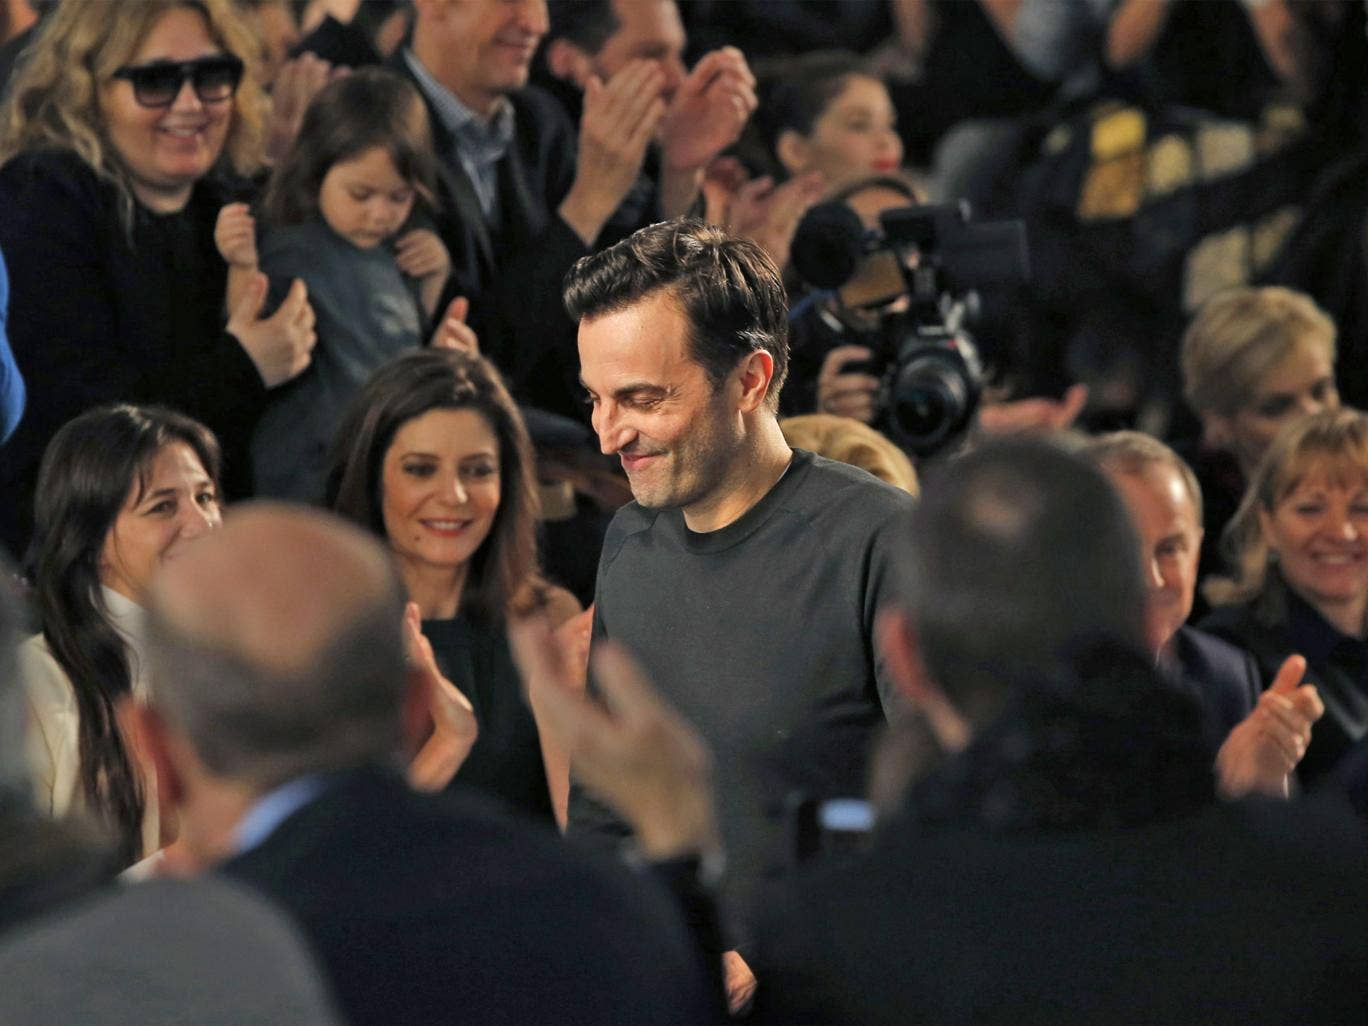 Nicolas Ghesquière: 'I ask people to do things they're not used to doing. I play a little game... But it's subtle'